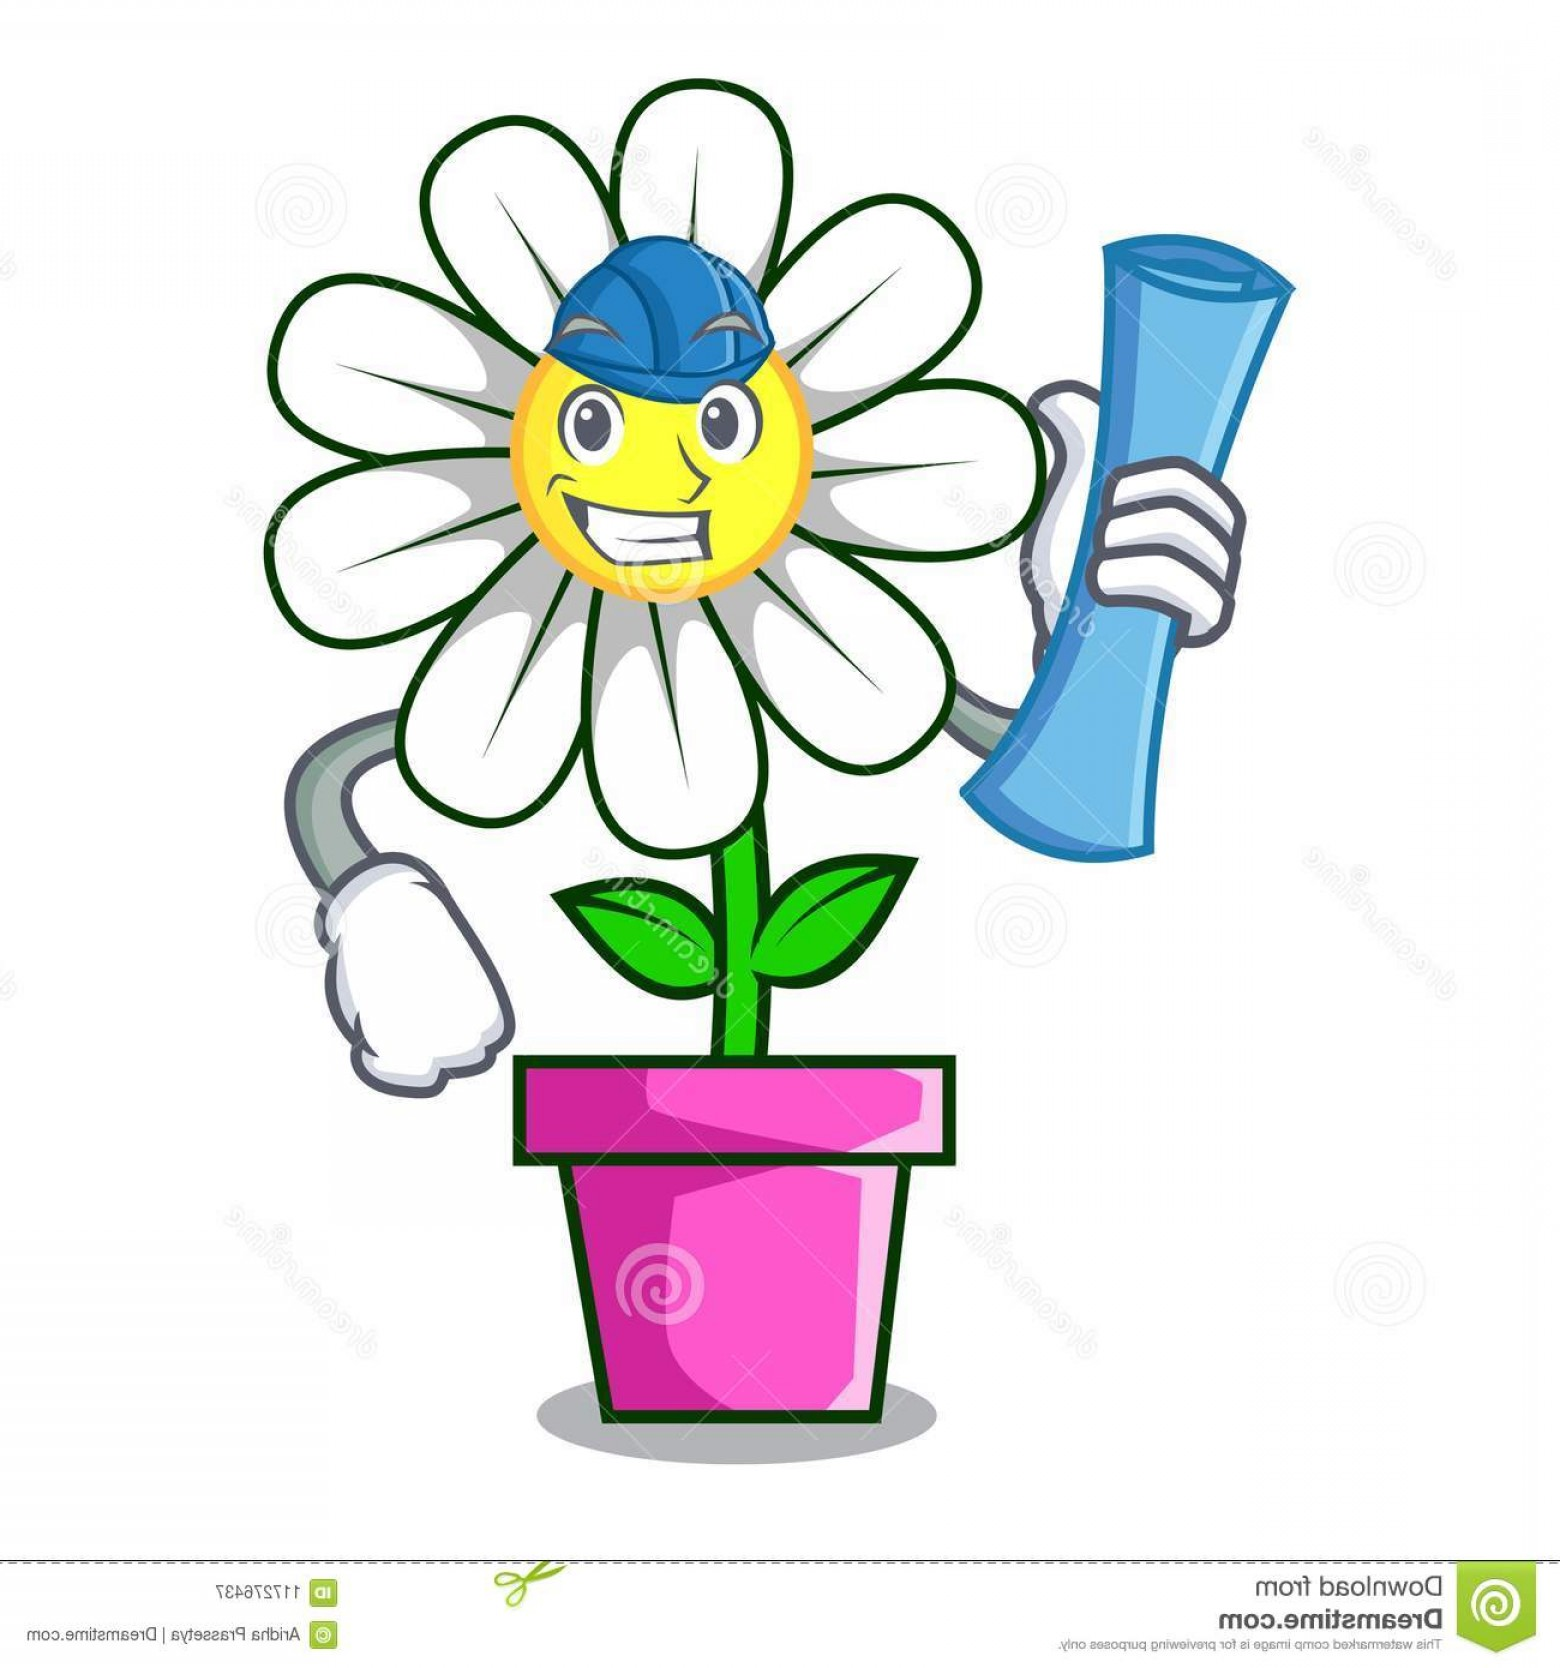 Vector Image Of A Budding Flower: Architect Daisy Flower Character Cartoon Architect Daisy Flower Character Cartoon Vector Illustration Image